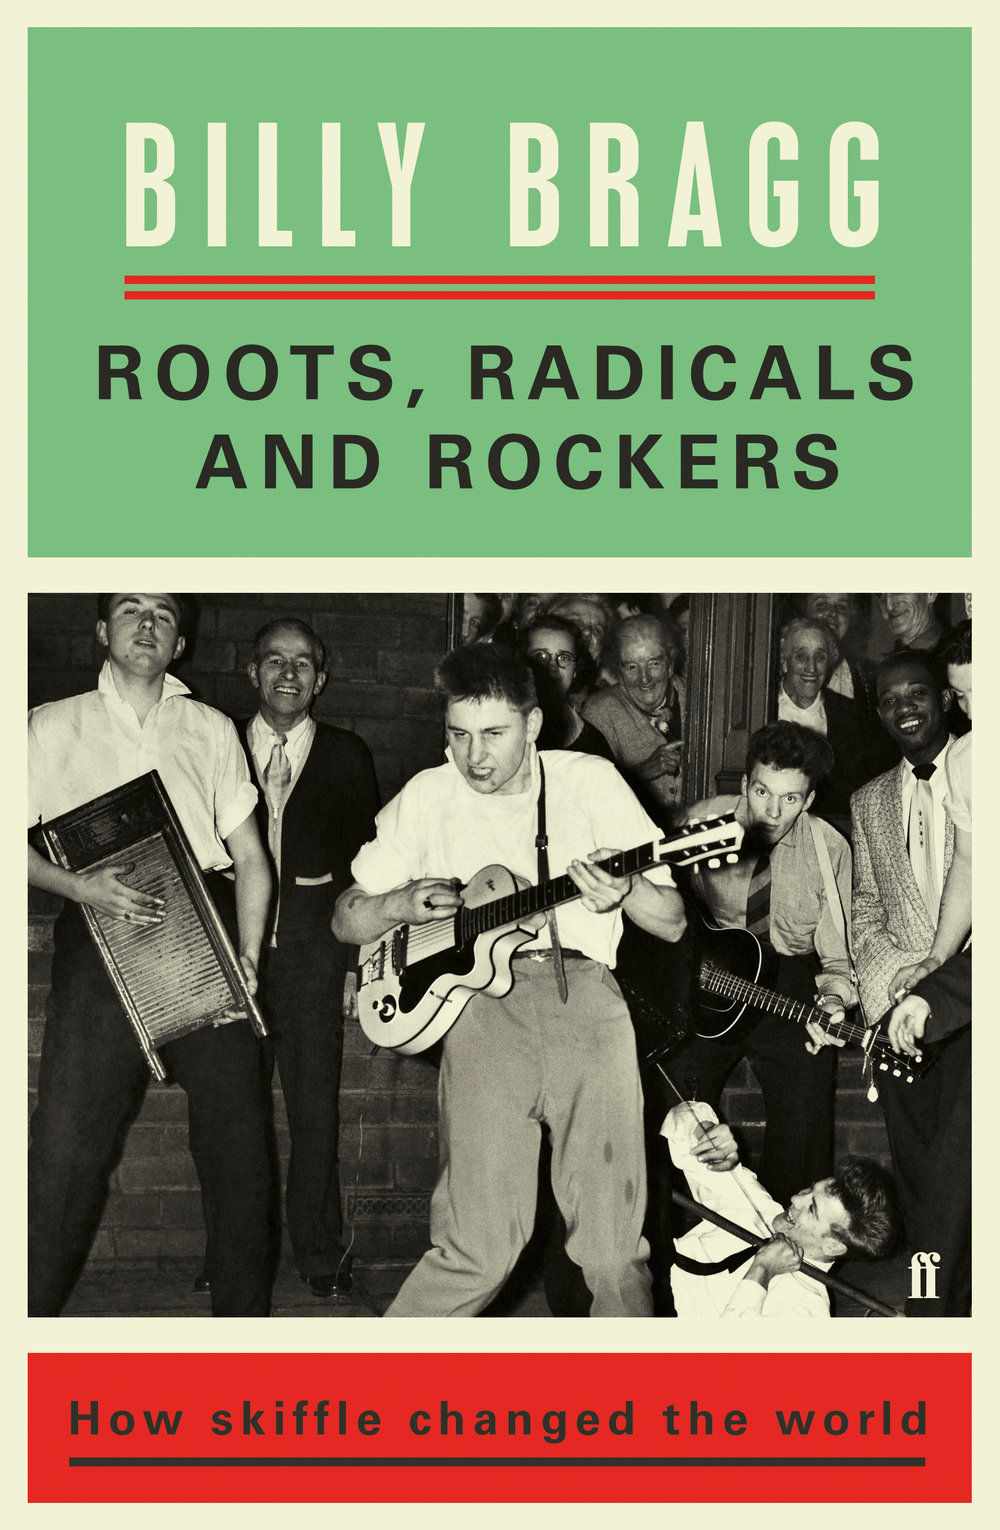 roots radicals rockers cover.jpg